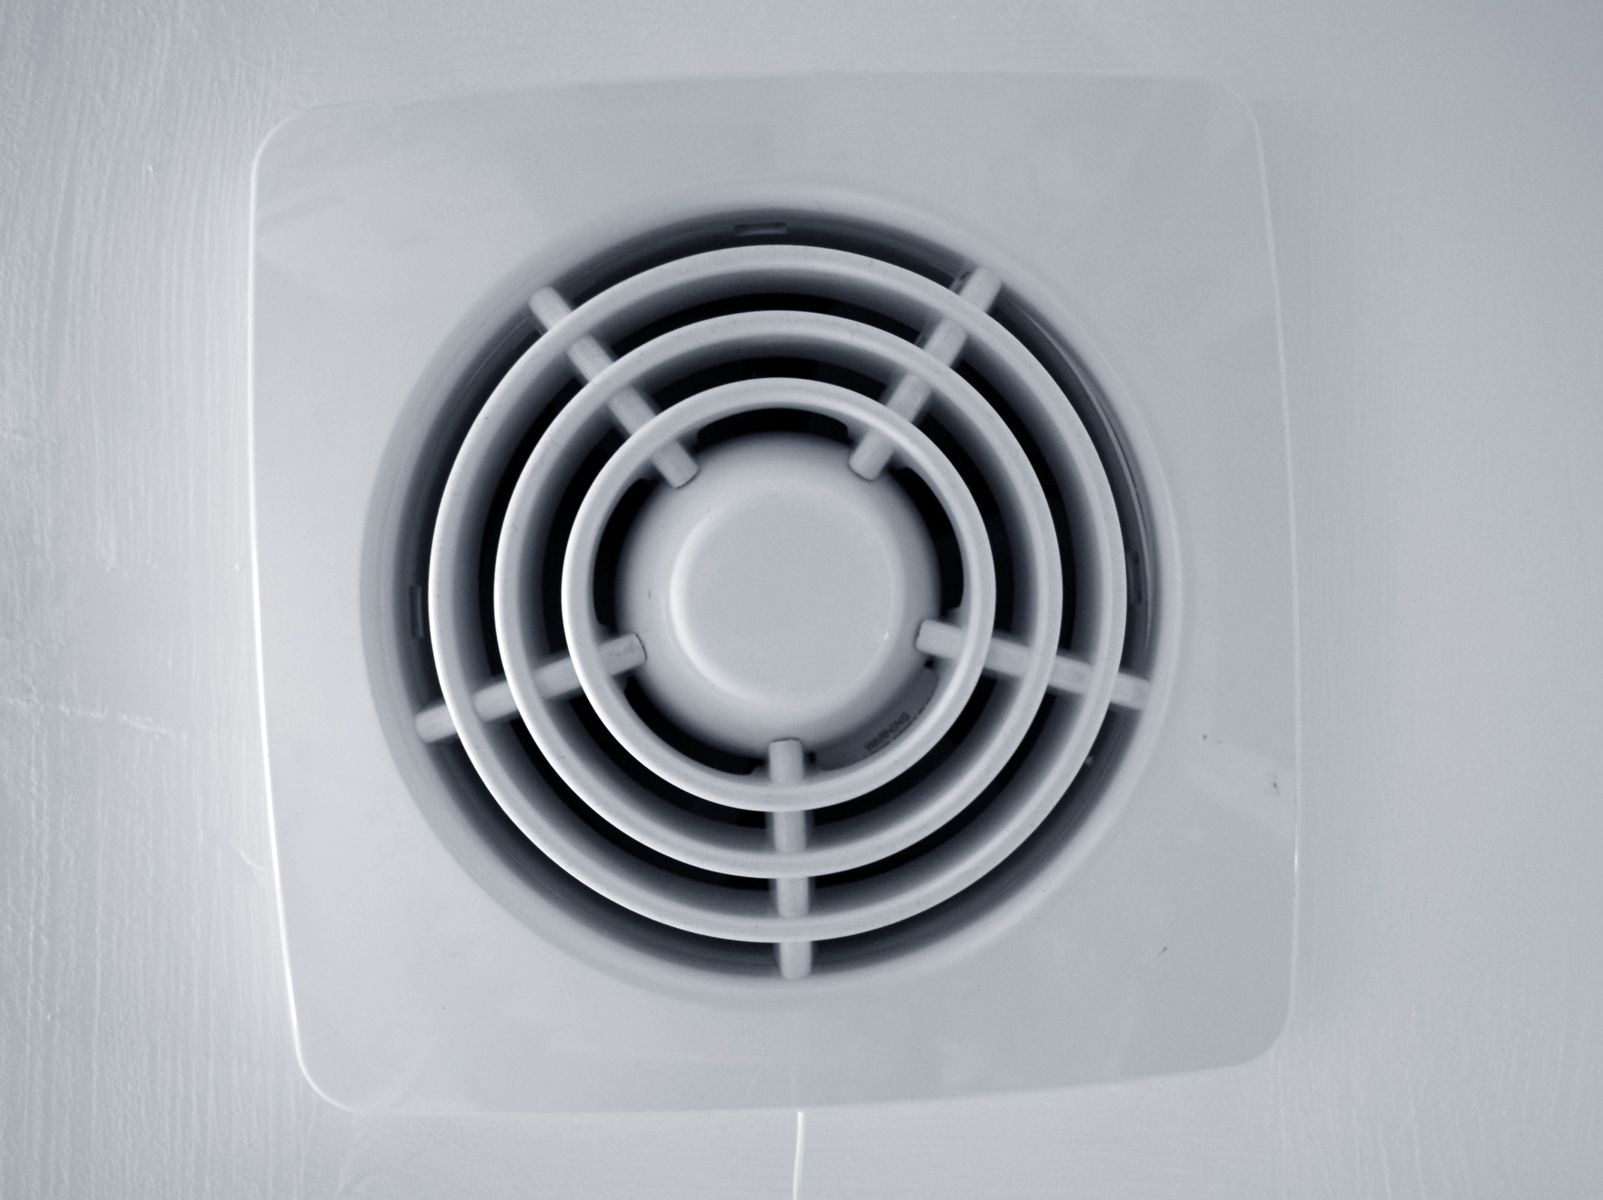 Bathroom Venting Code Exhaust Fans And Windows Kansas City Attic Whole House Fan Installation